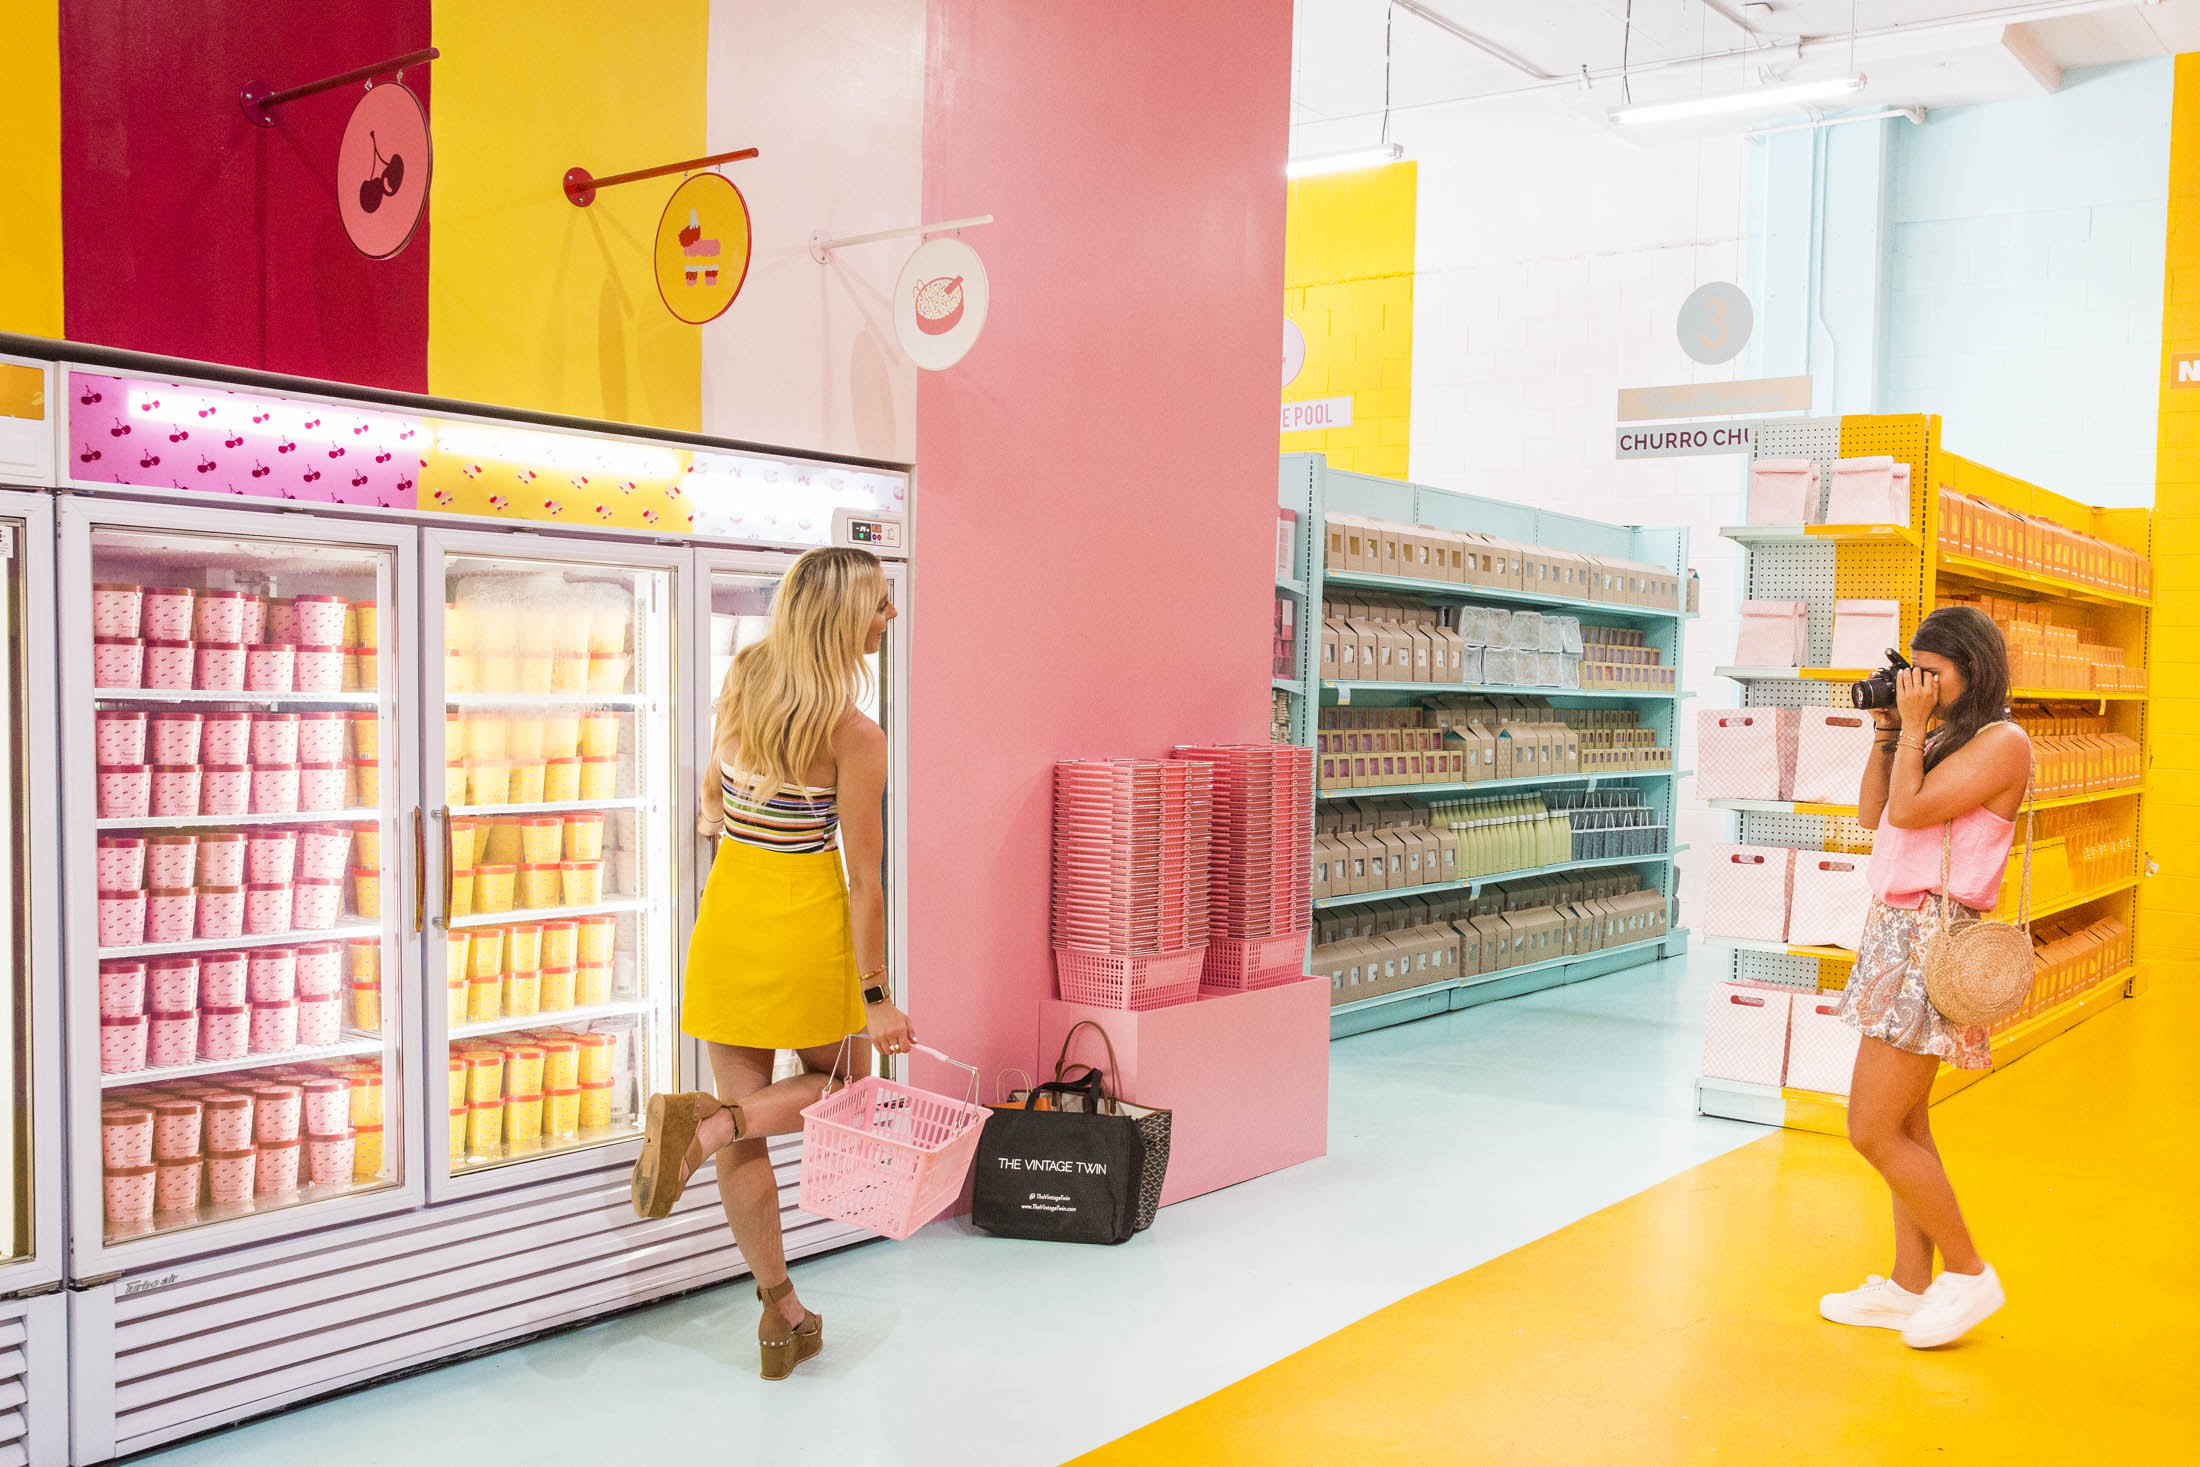 bloomberg.com - Emily McCormick - What If the Museum of Ice Cream Is the Future of Retail?